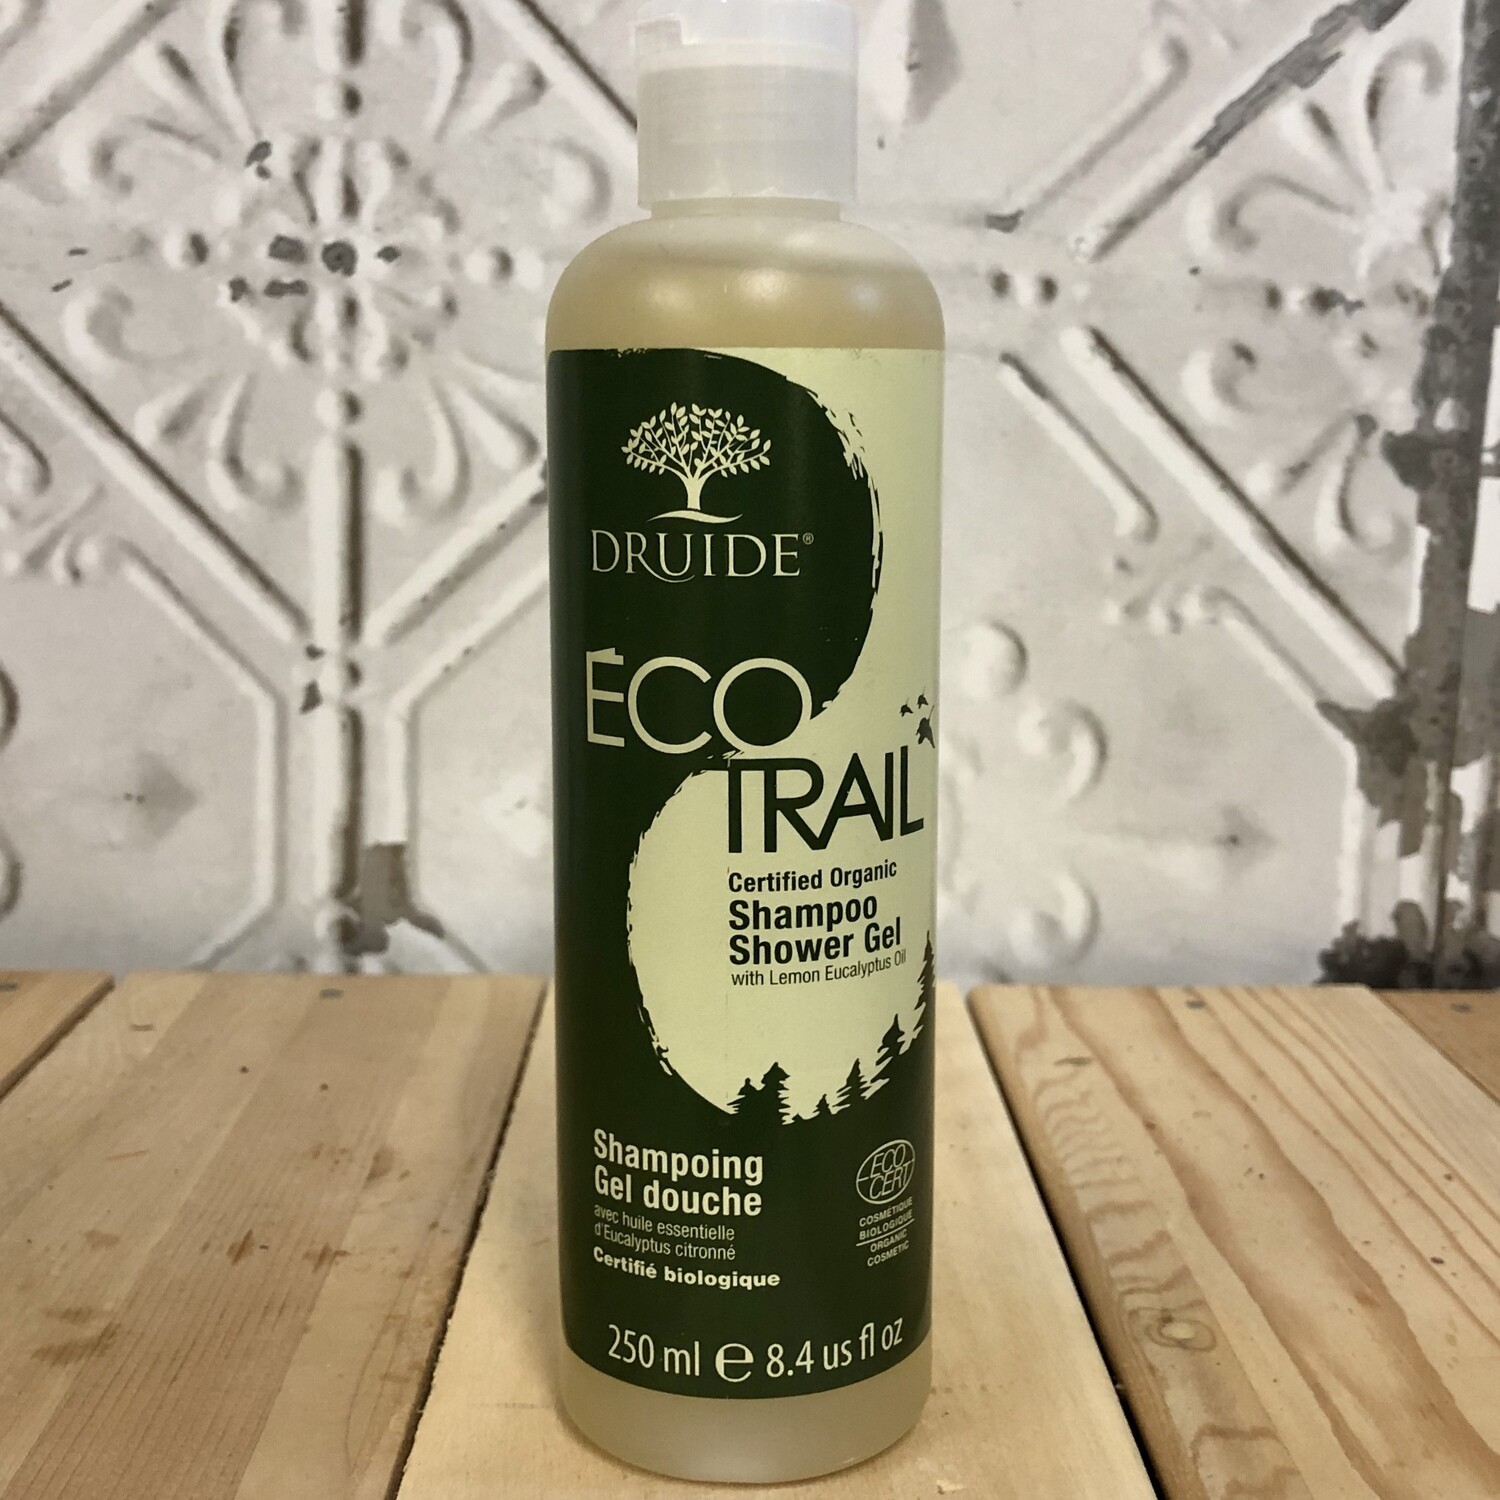 DRUIDE Eco Trail Shampoo Shower Gel 250ml